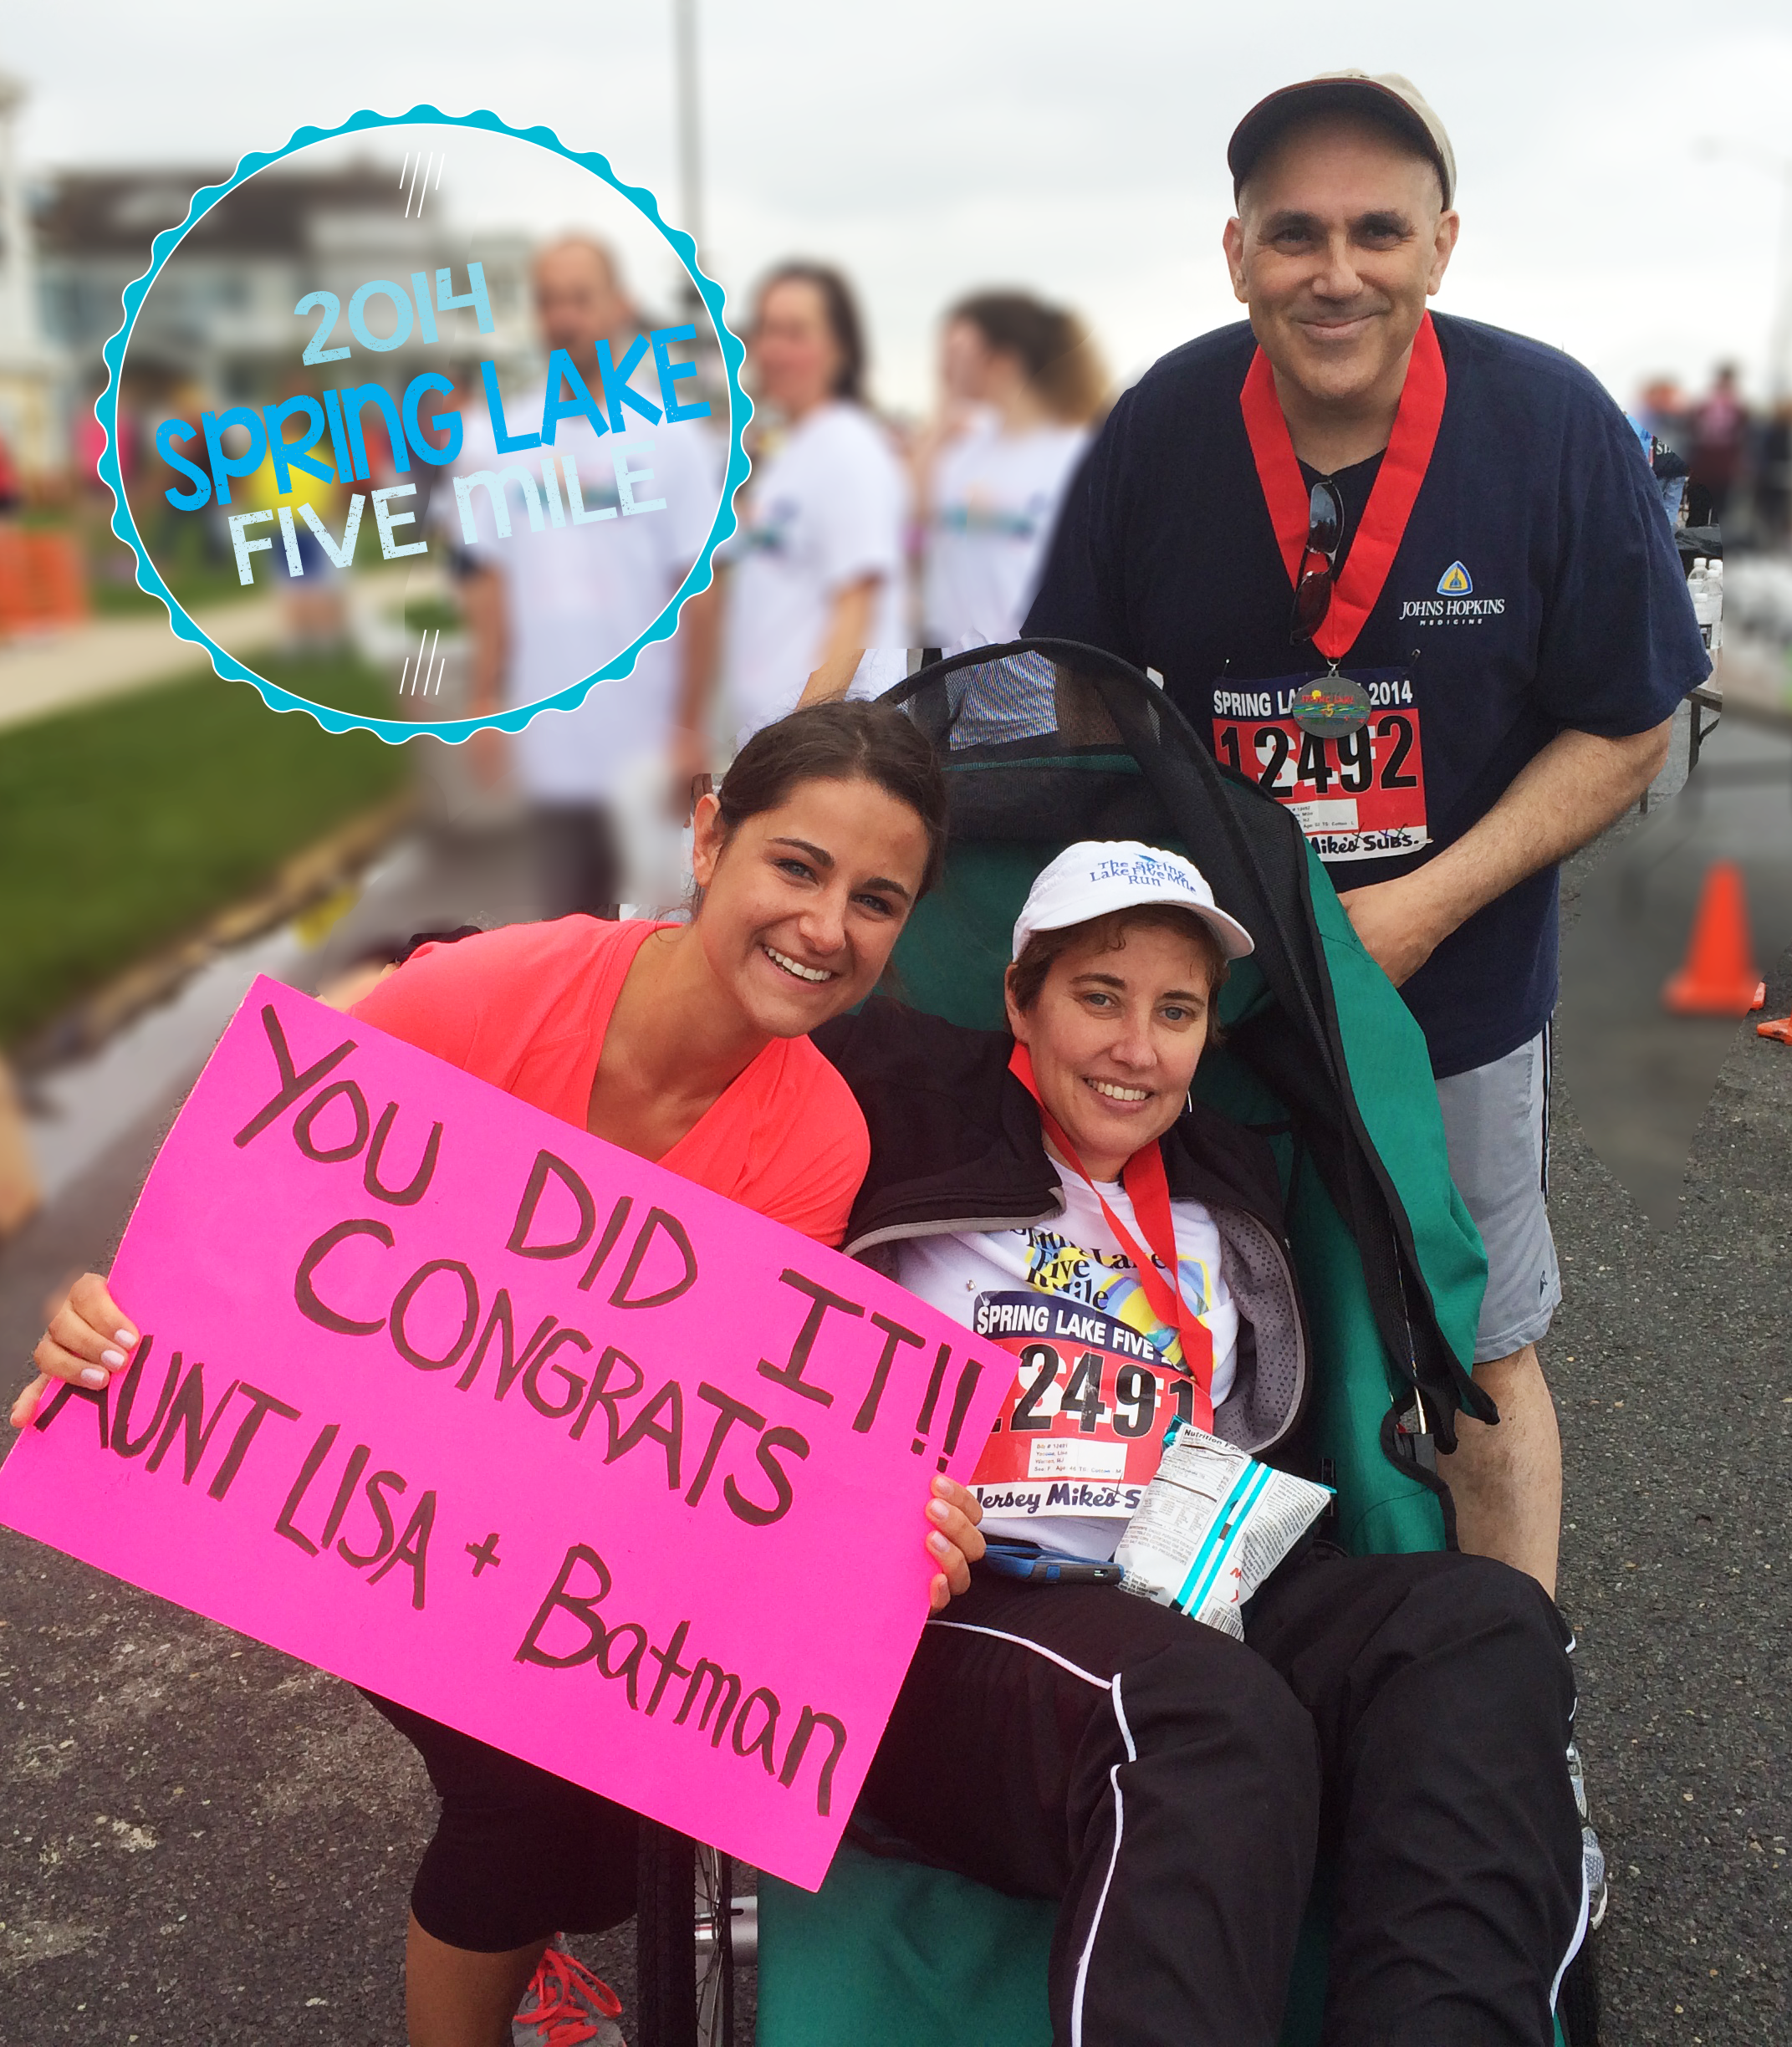 Kate, Lisa, Mike It is about overcoming the odds and the will to cross the finish line.